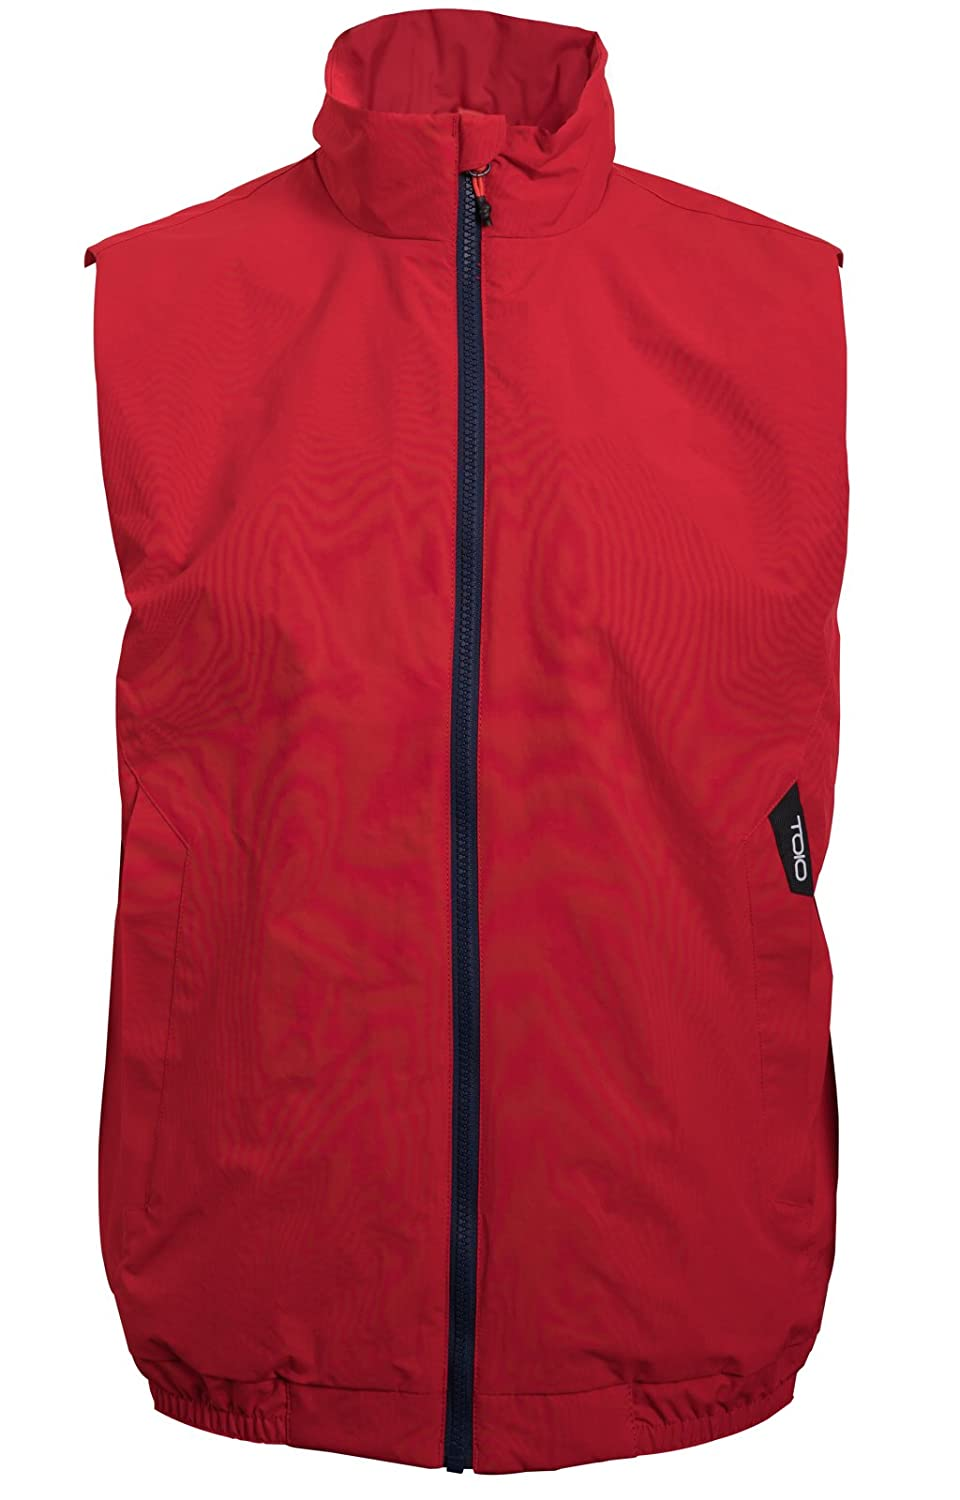 TOIO Mens TEAM VEST - Windproof and water resistant…